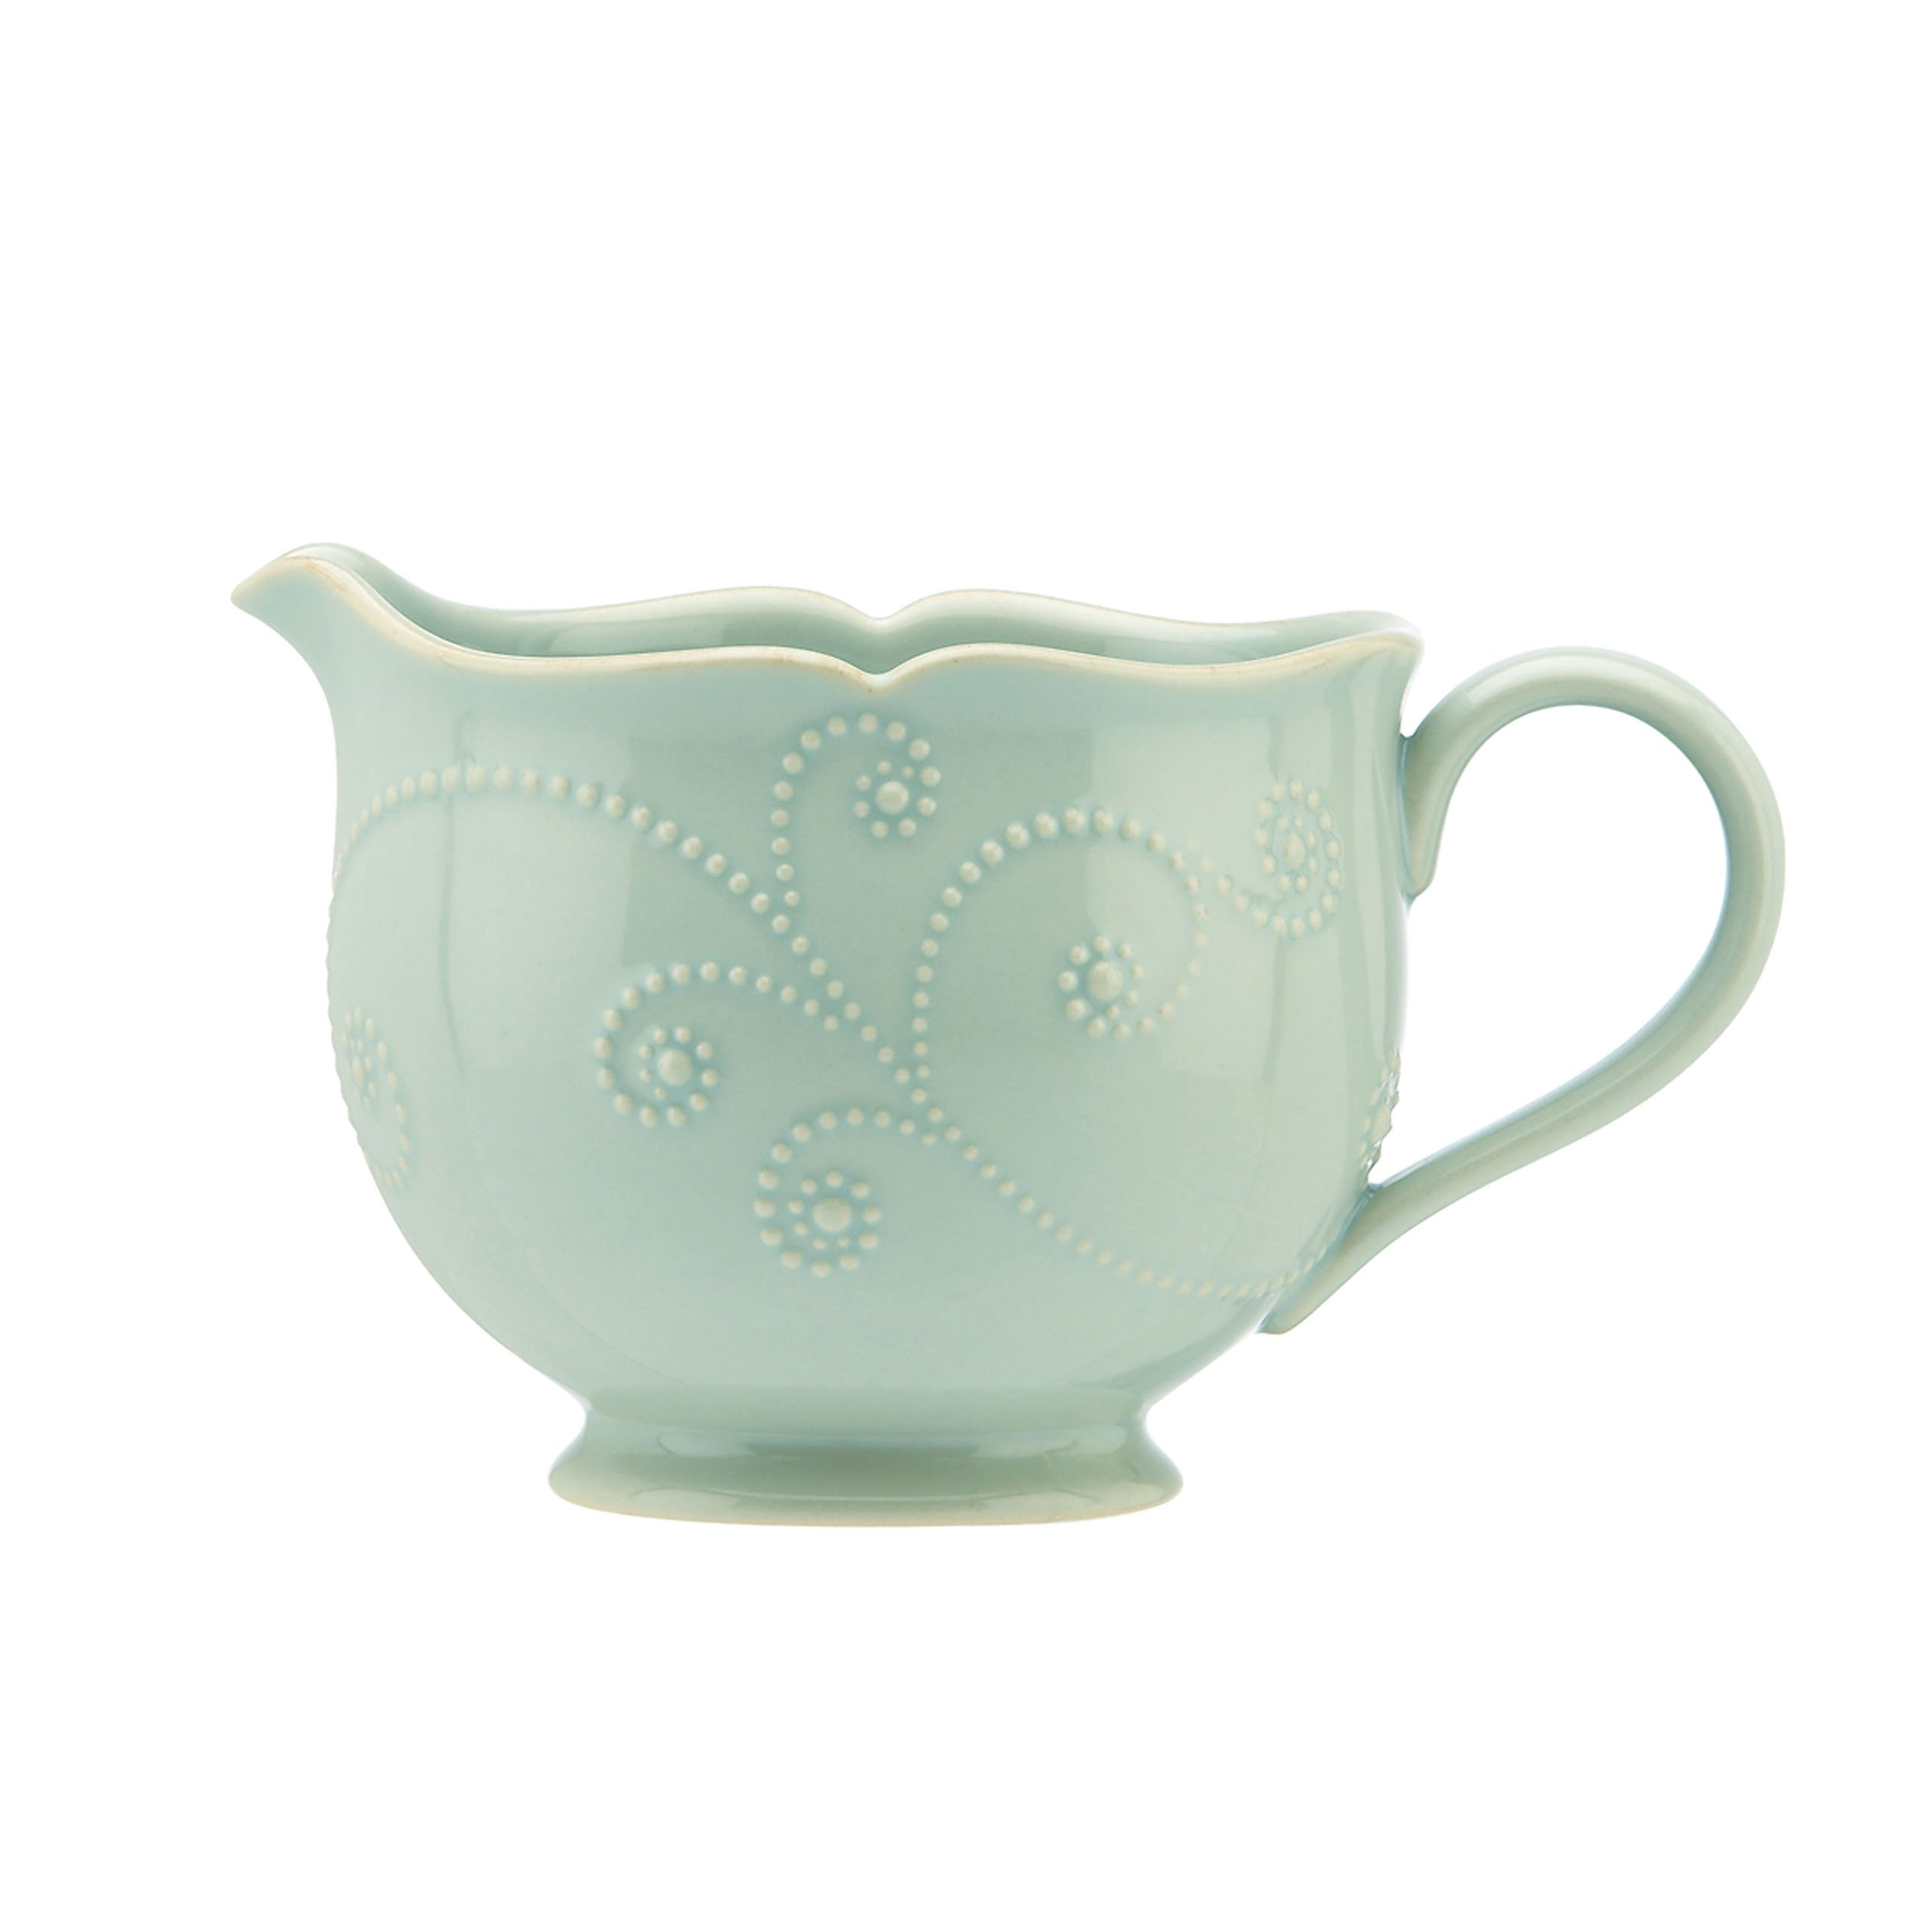 Lenox French Perle Sauce Pitcher, Ice Blue